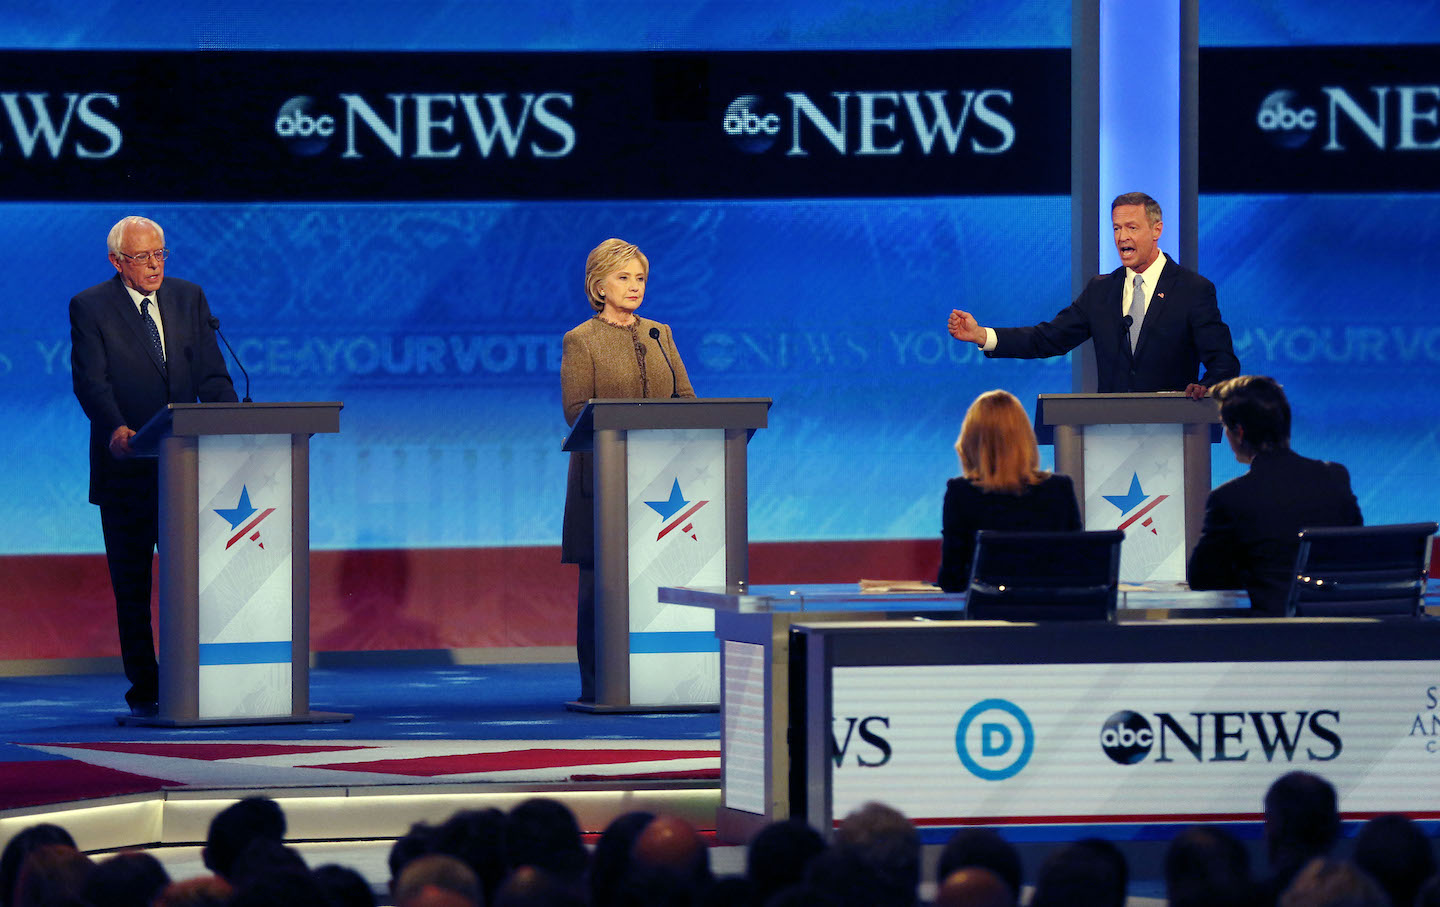 democrats debate in the shadows of a saturday night before christmas